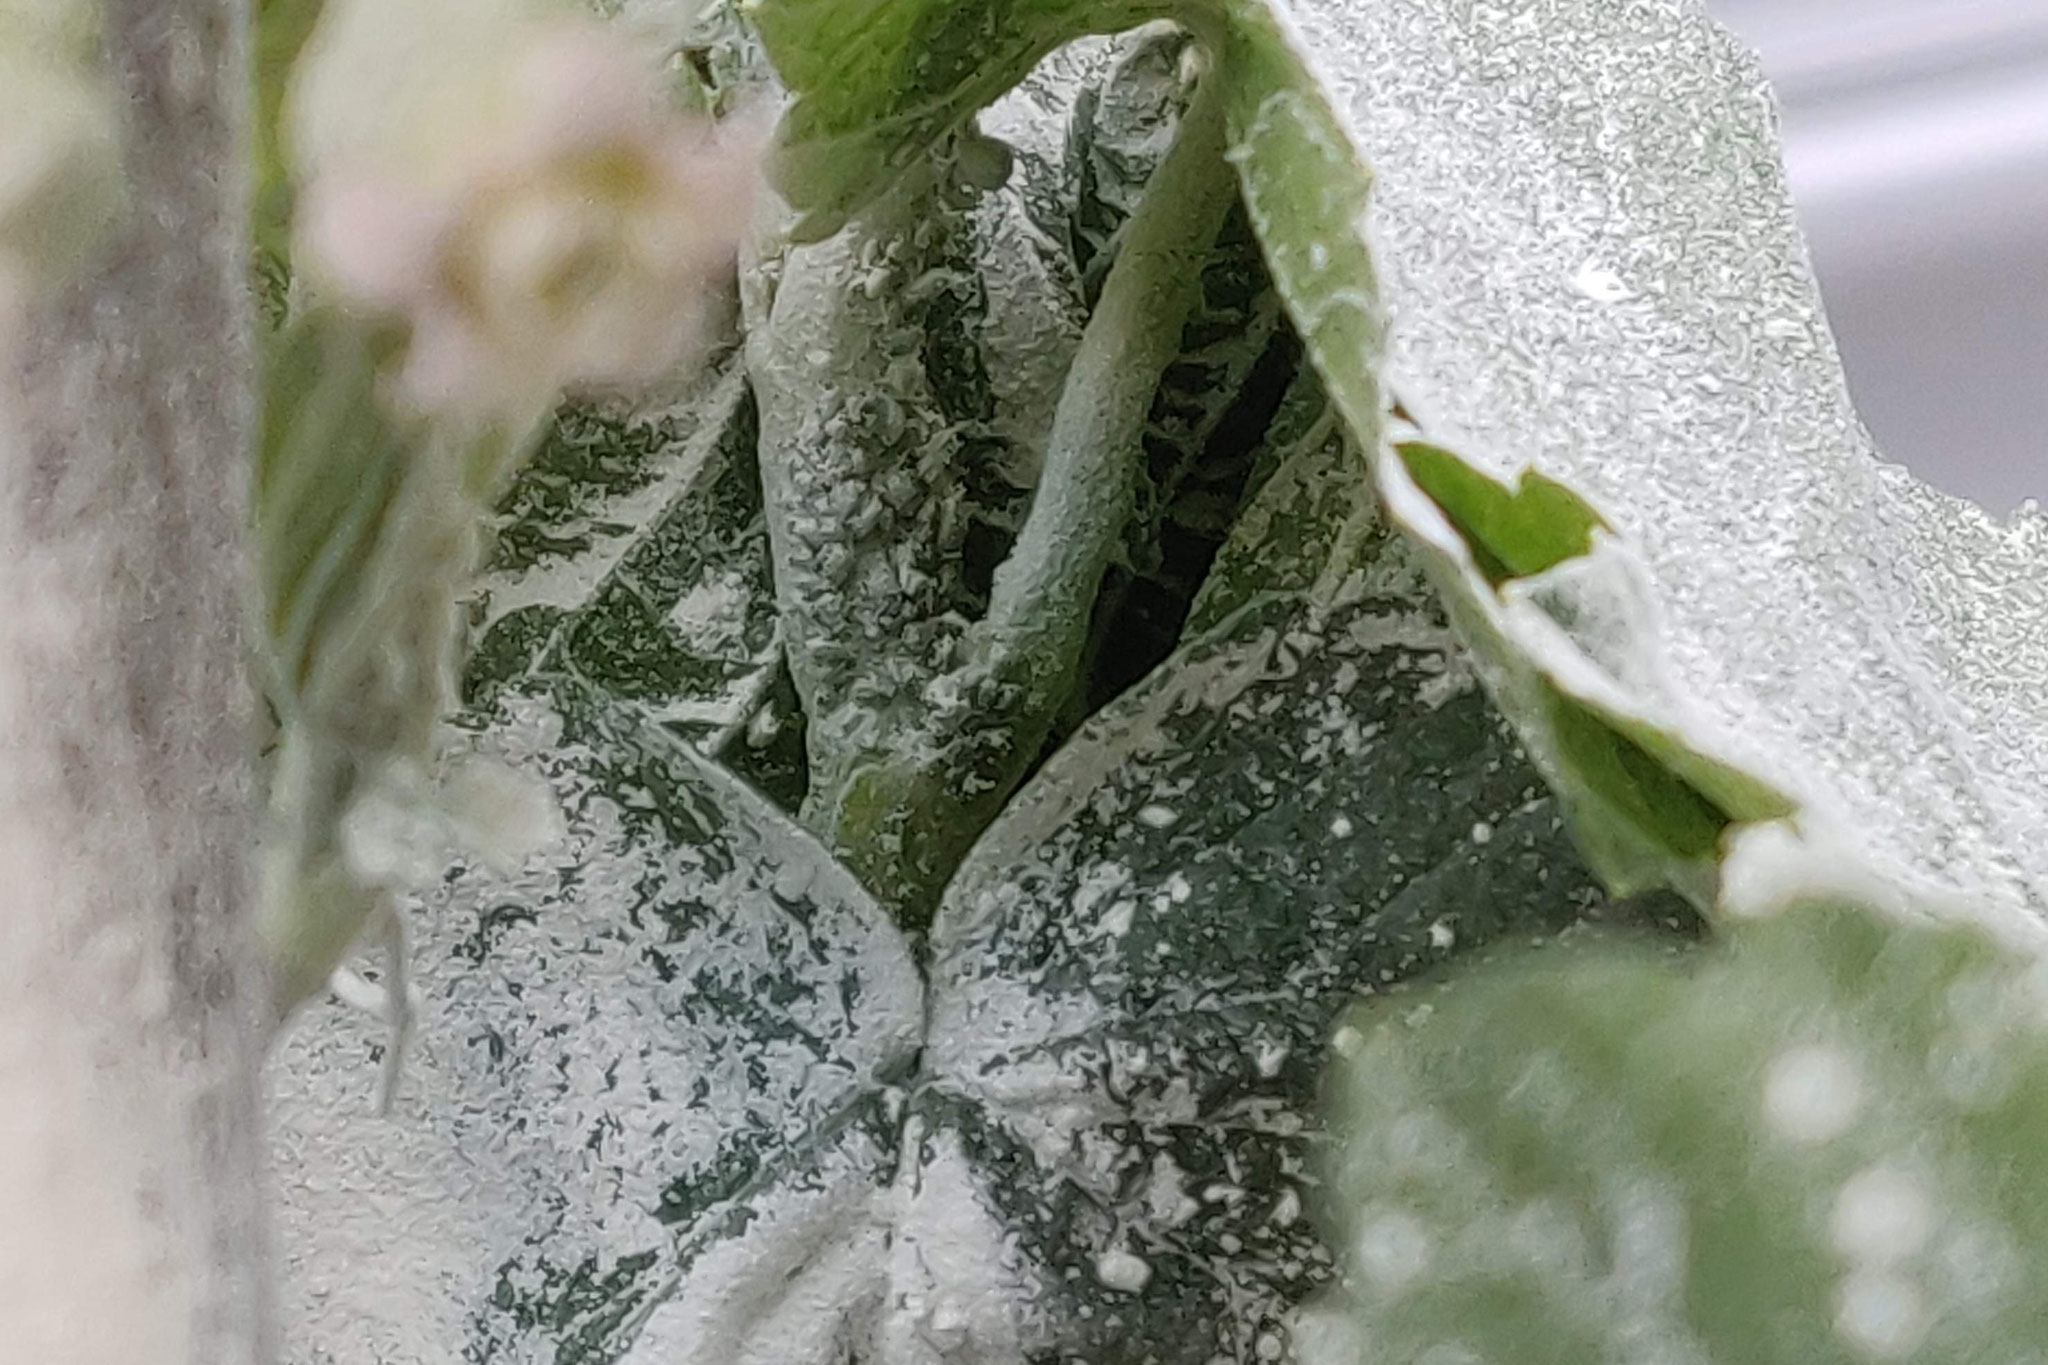 Treatment of aphids with KE-mineral. One tablespoon of KE-mineral was placed on a plate and blown by mouth onto the affected area.